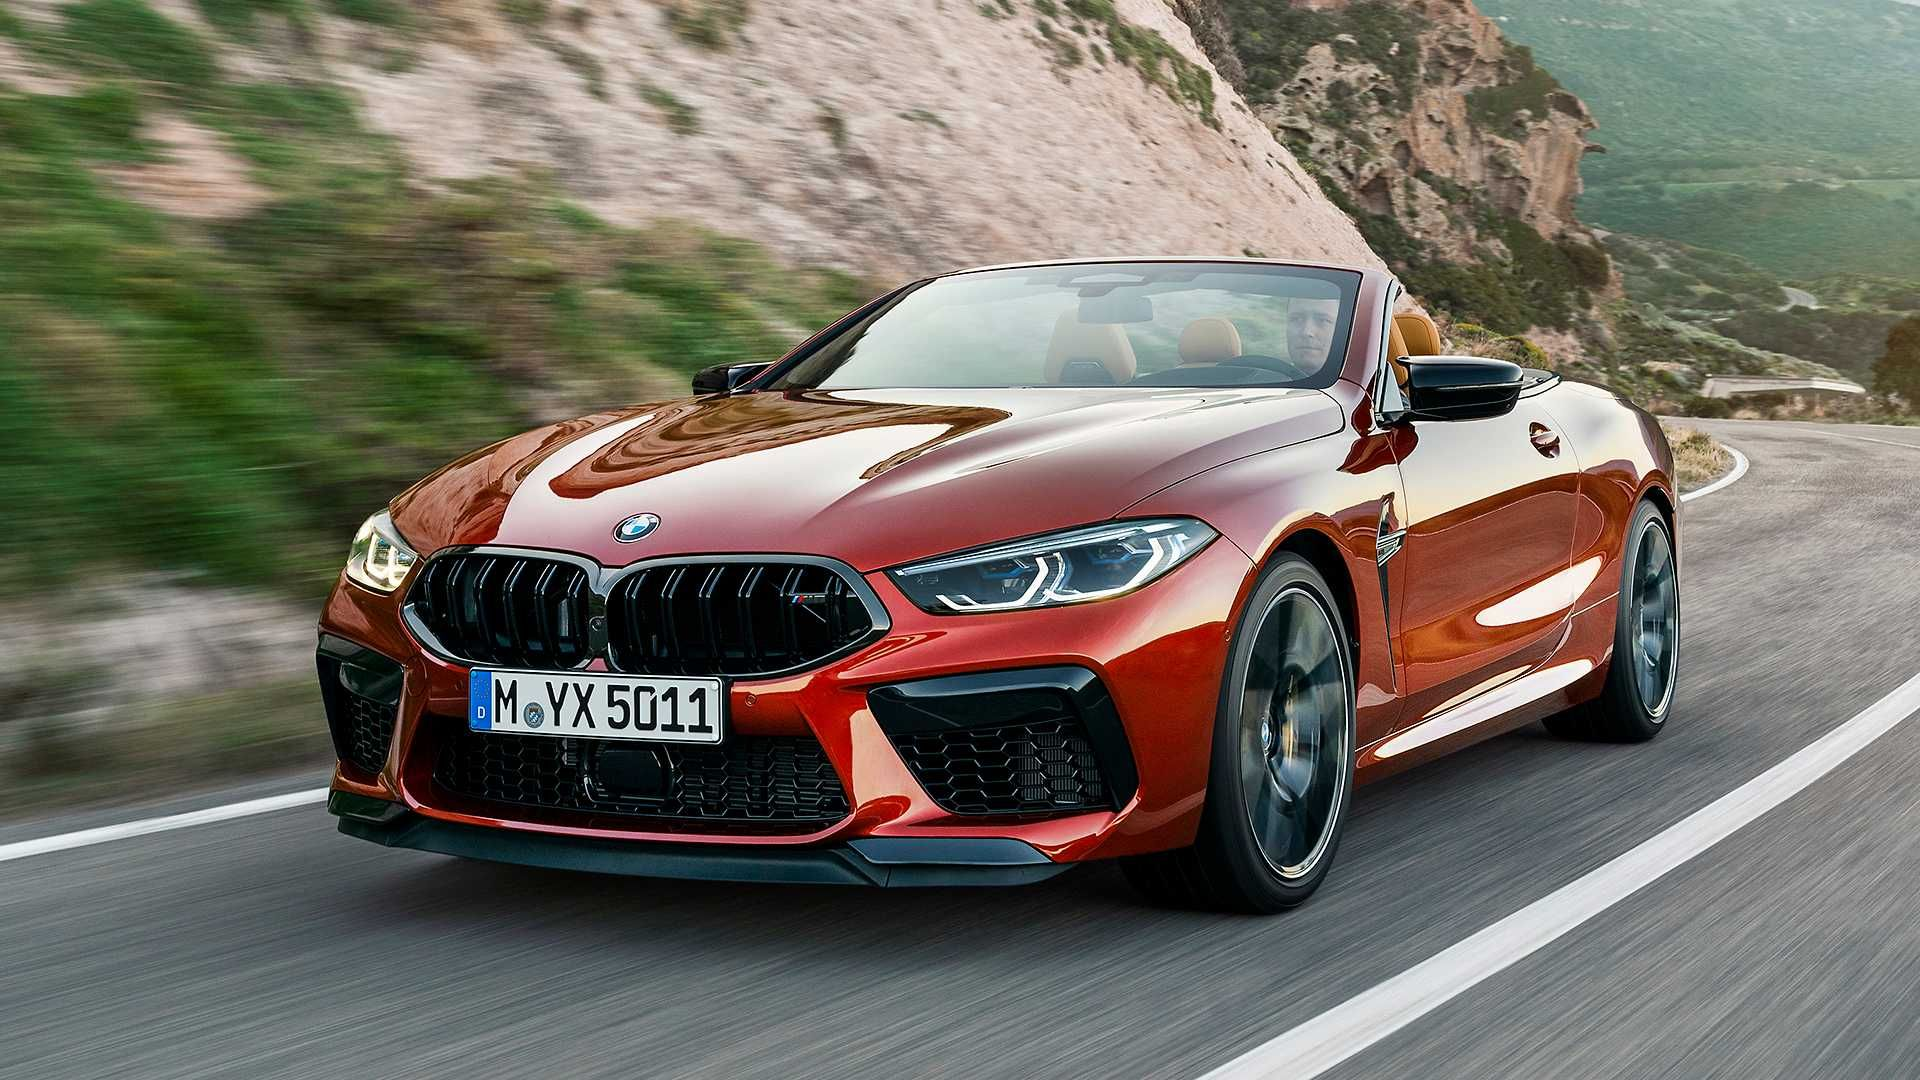 Bmw M Outsells Mercedes Amg For The First Time In 2020 Audi Sport Bmw Bmw Classic Cars